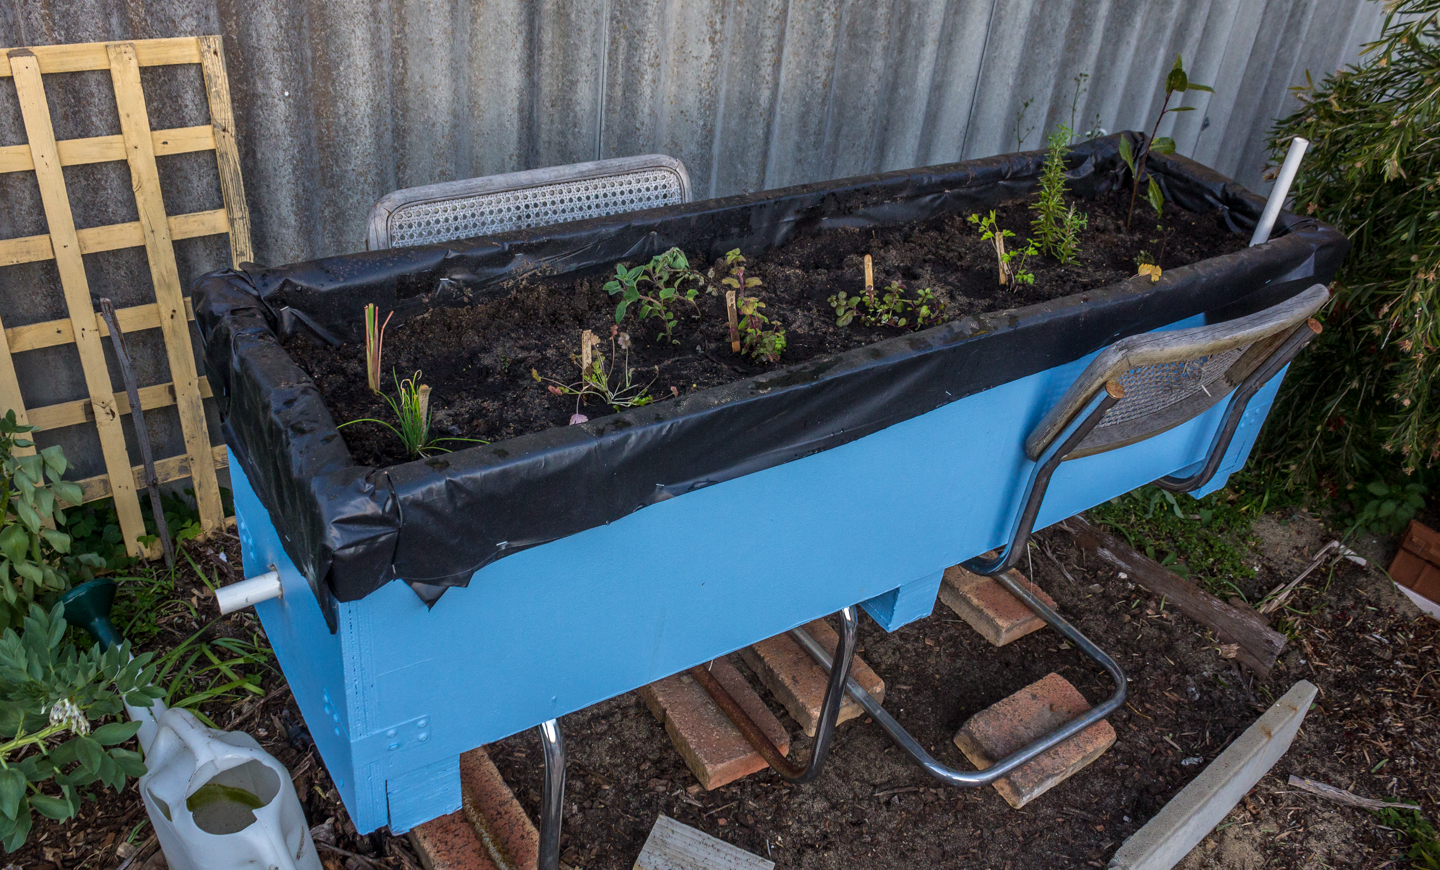 19/09/15 Day 28 [Day 2 of the project]: The Final Wicking Bed 3 Herb 14